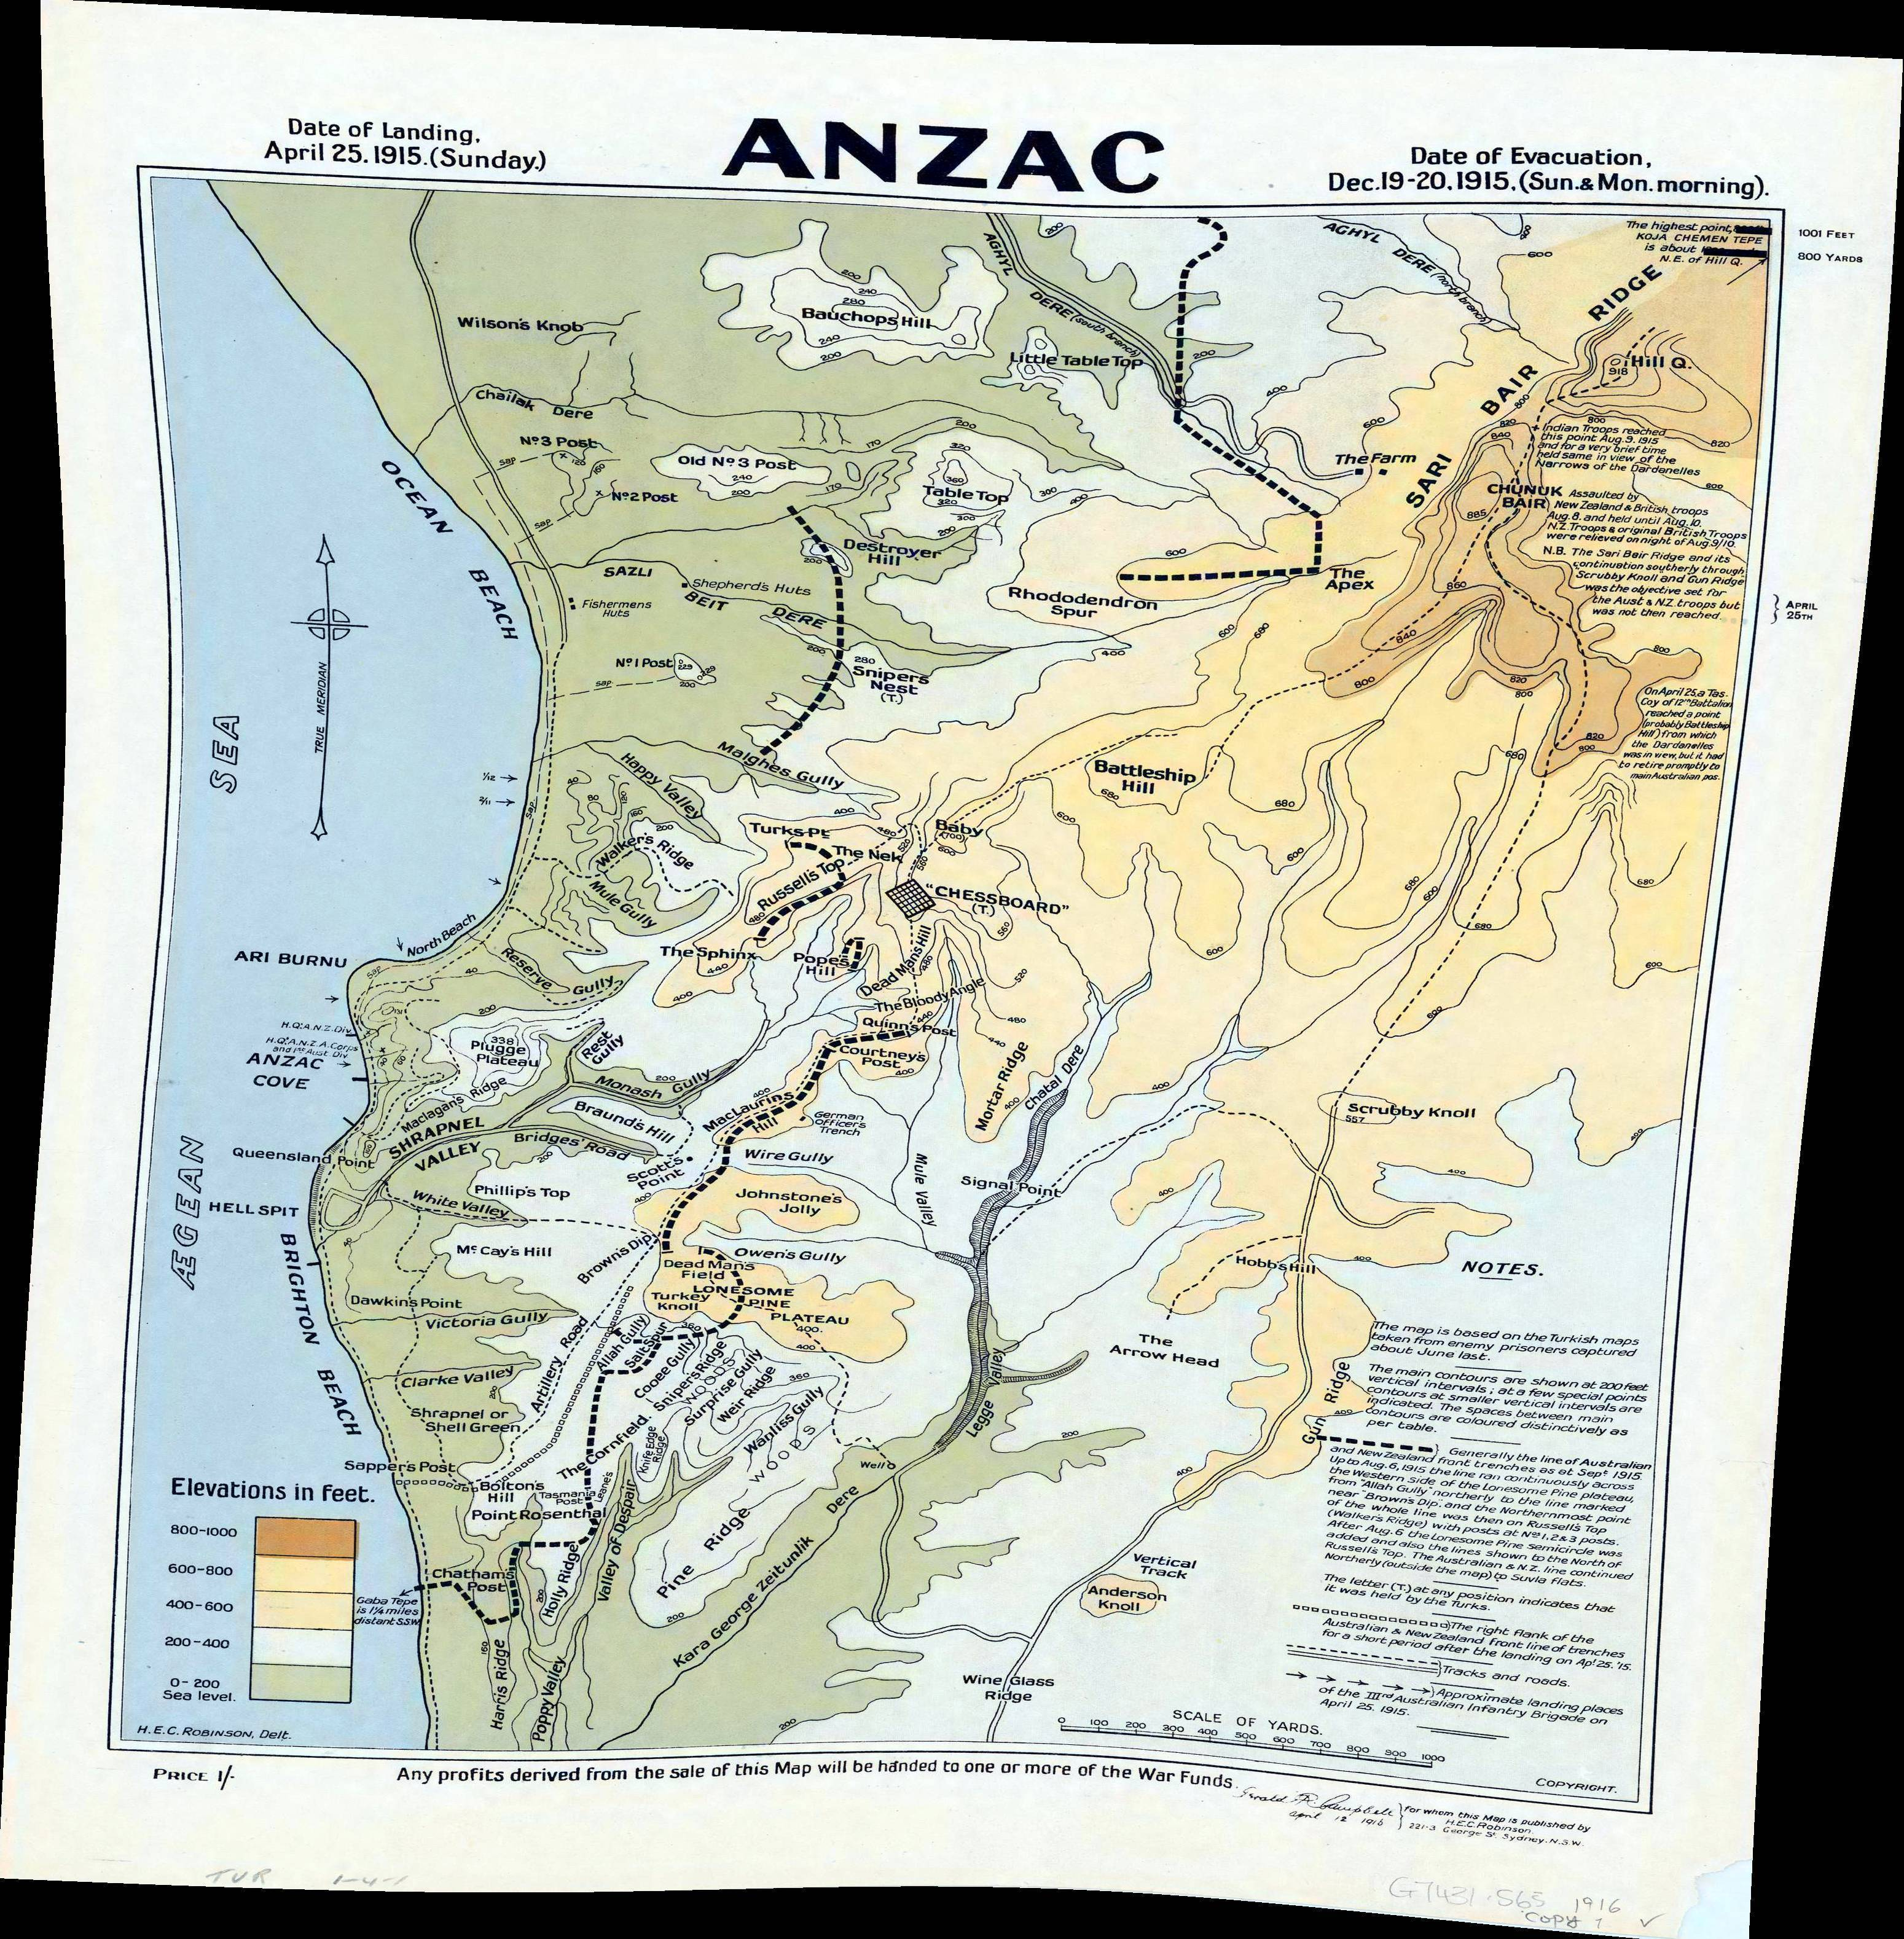 Anzac Cove Map File:Anzac Cove region topographic battlefield map H.E.C. Robinson